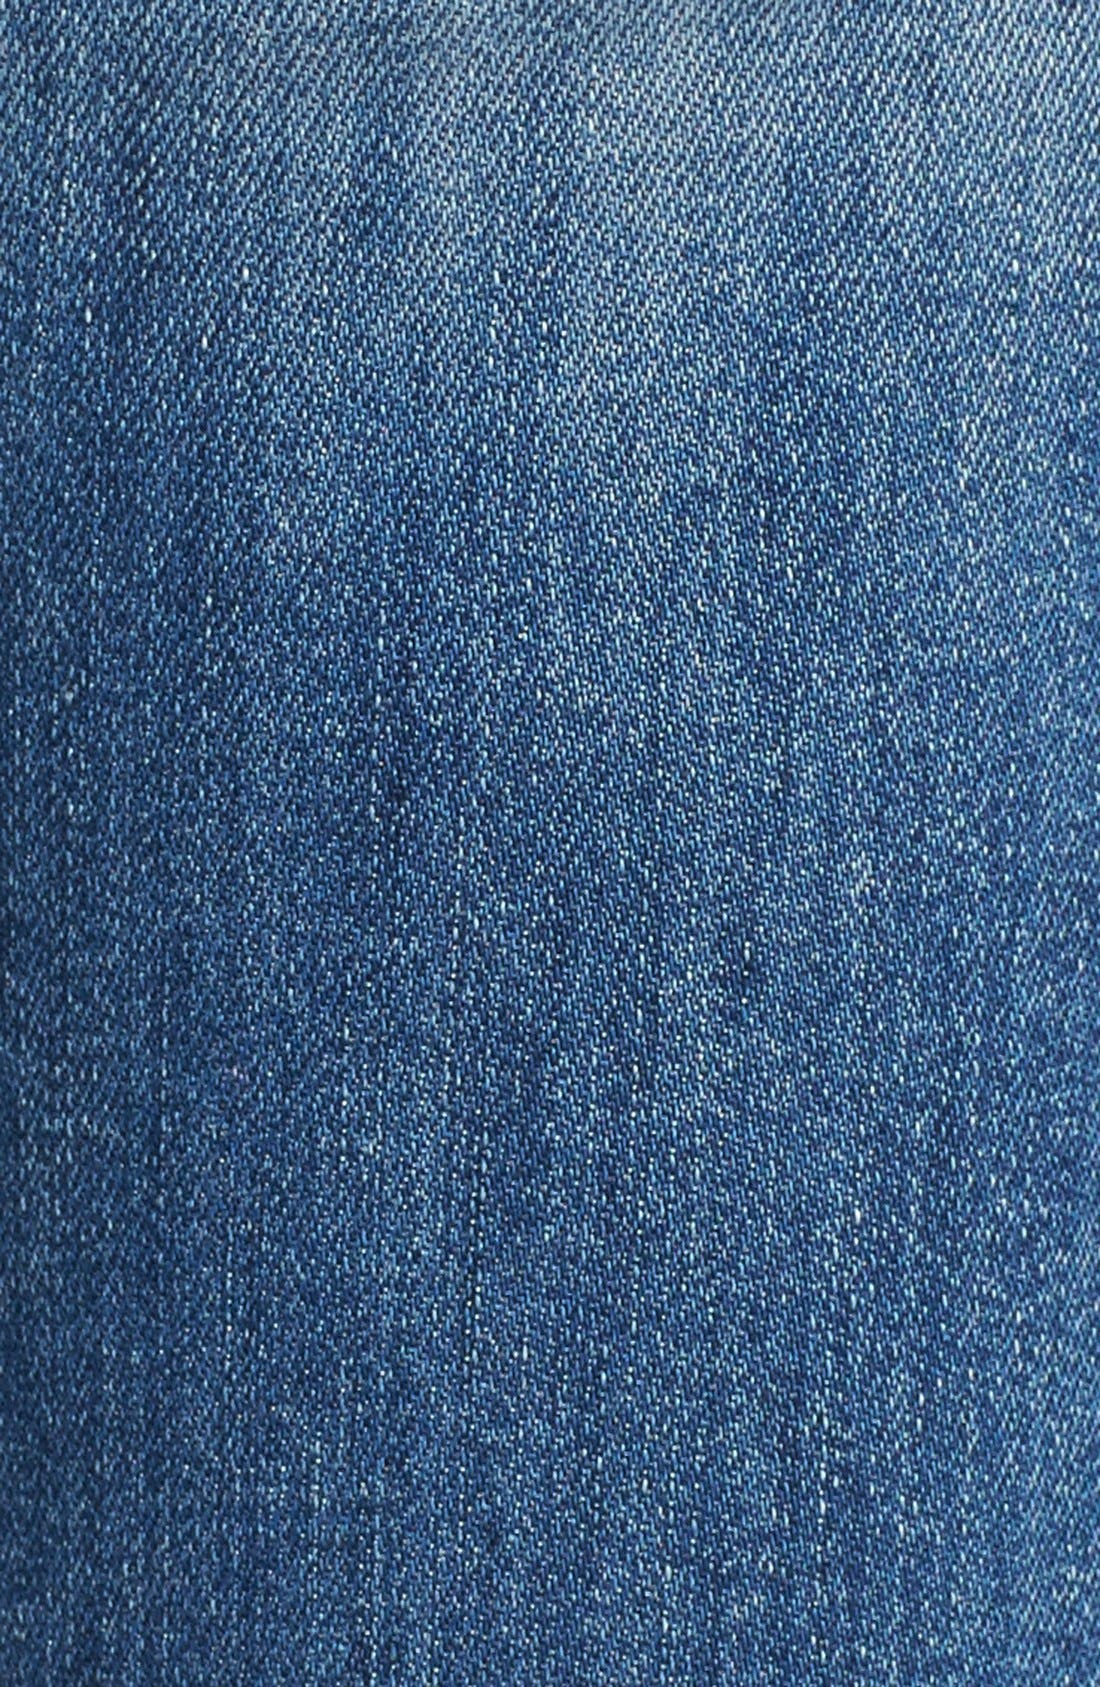 'Muse' Cuff Crop Jeans,                             Alternate thumbnail 4, color,                             INDIE